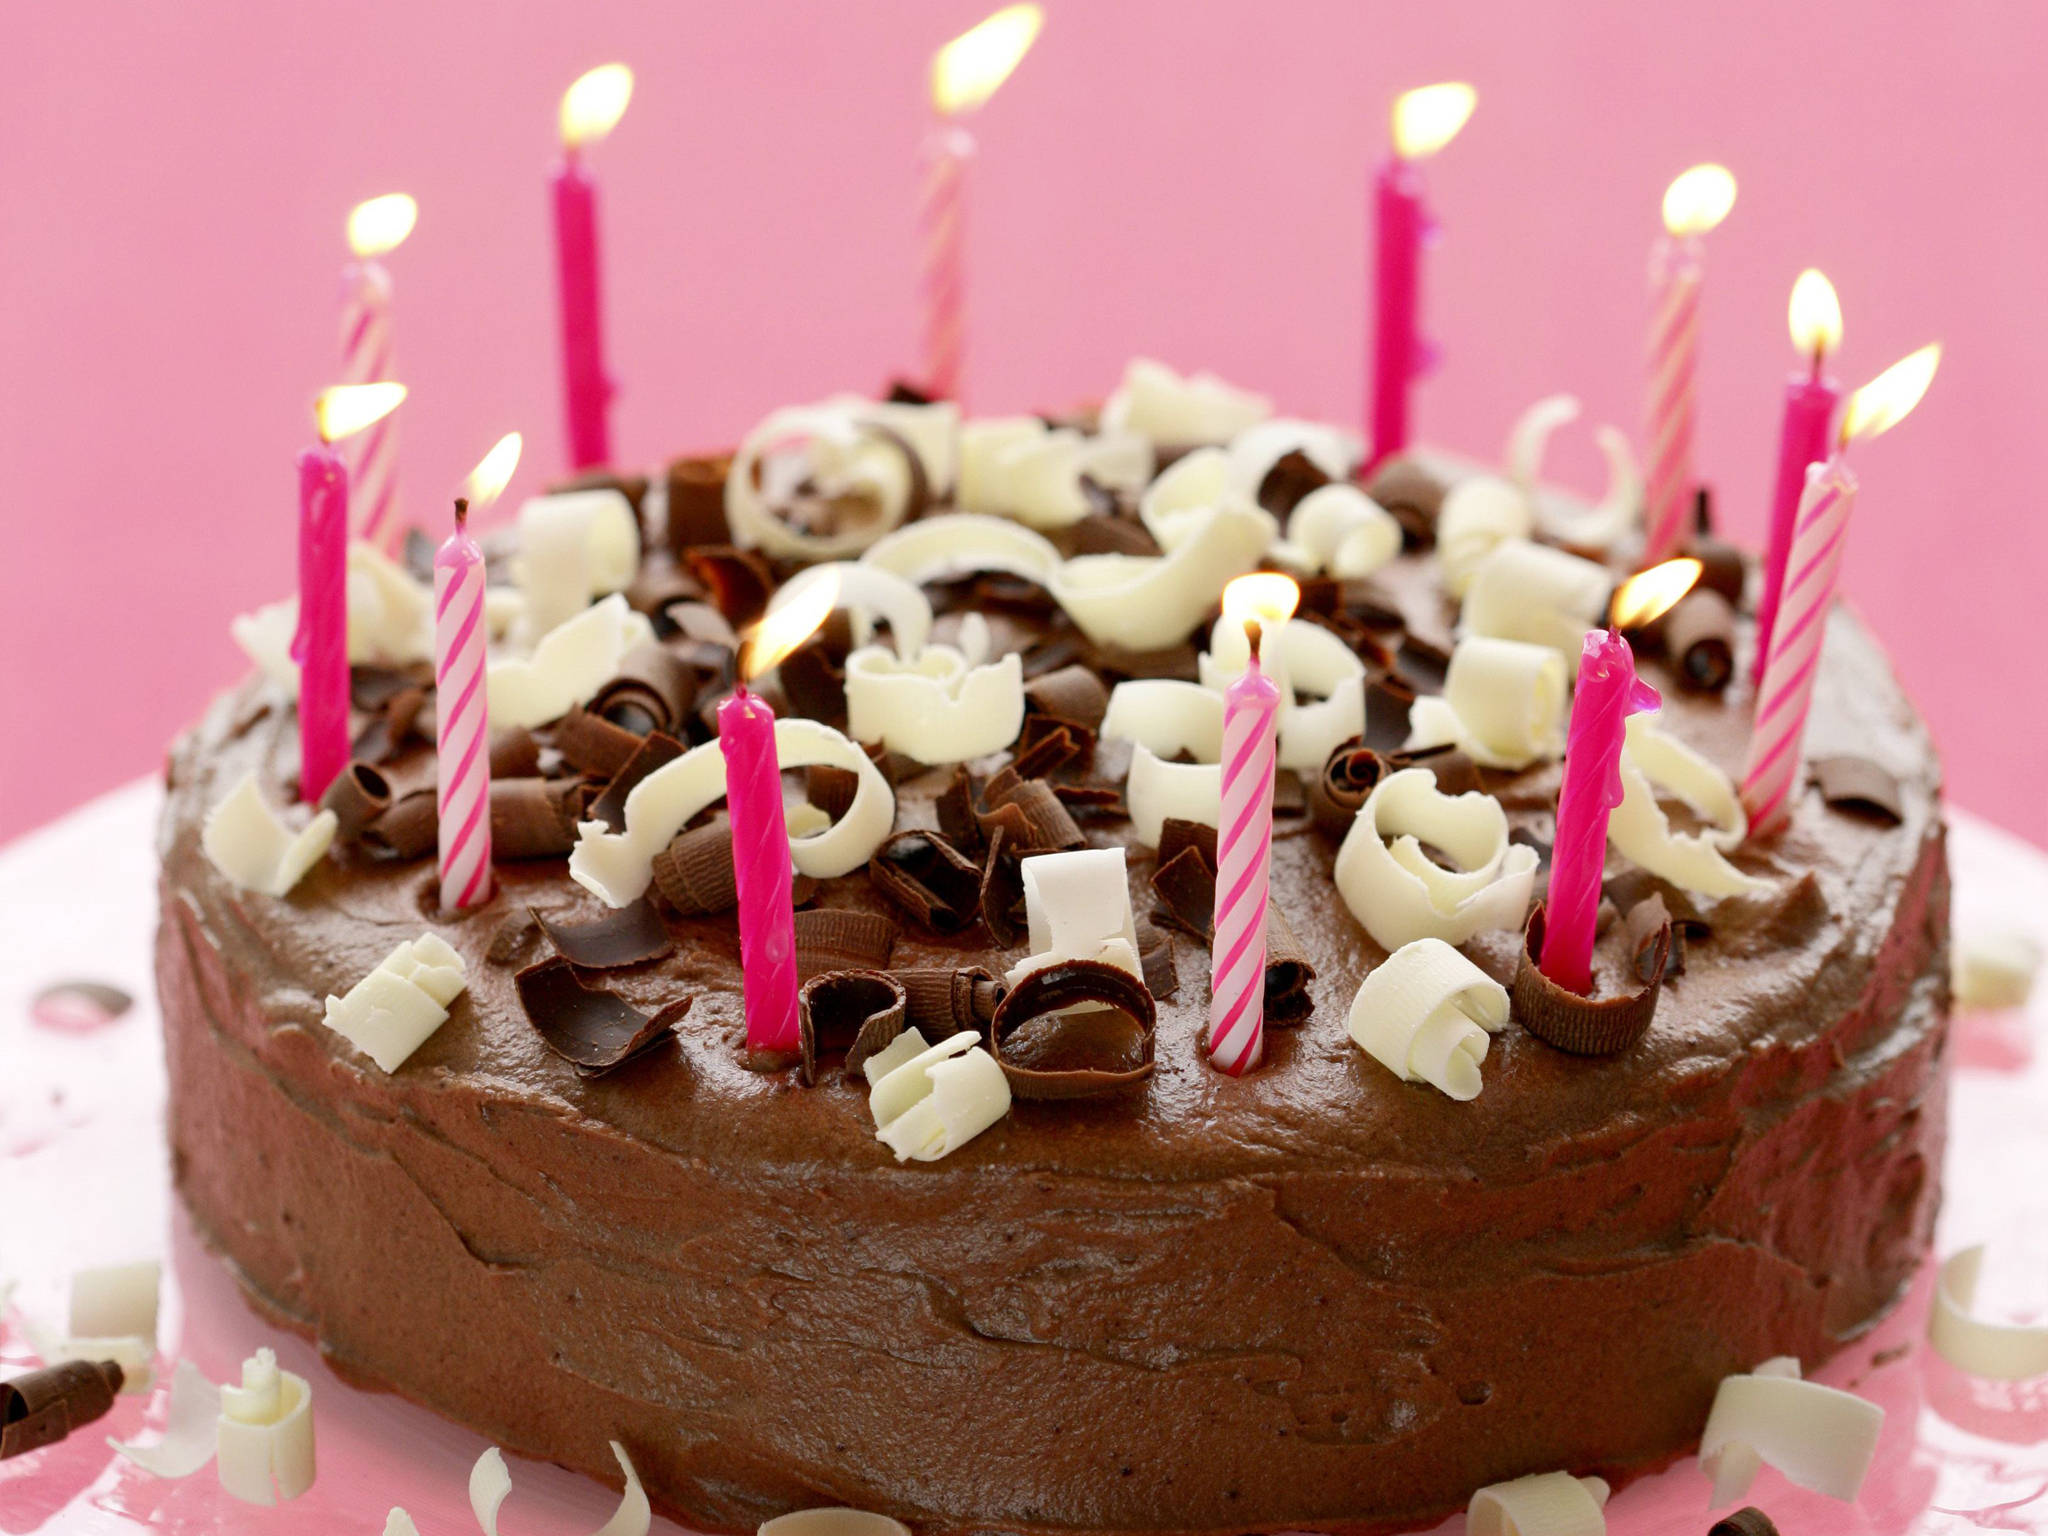 Chocolate birthday cake recipe Food To Love